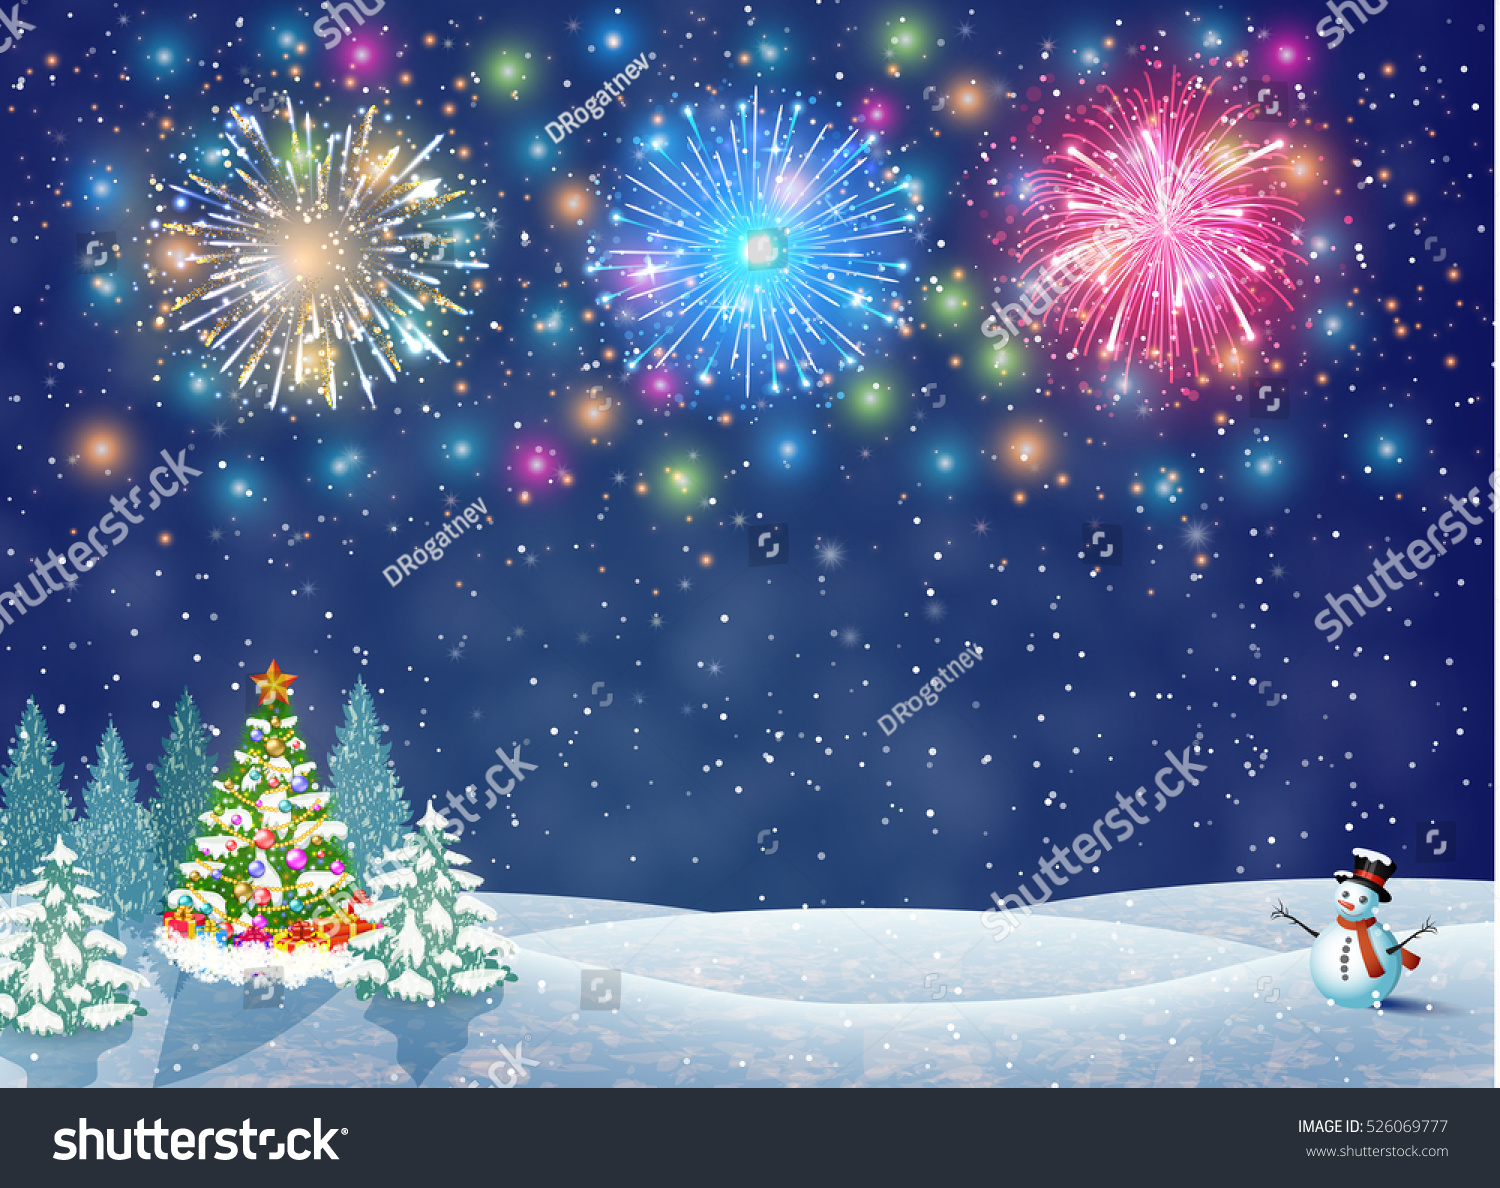 Christmas landscape night christmas tree snowman stock for Christmas landscape images